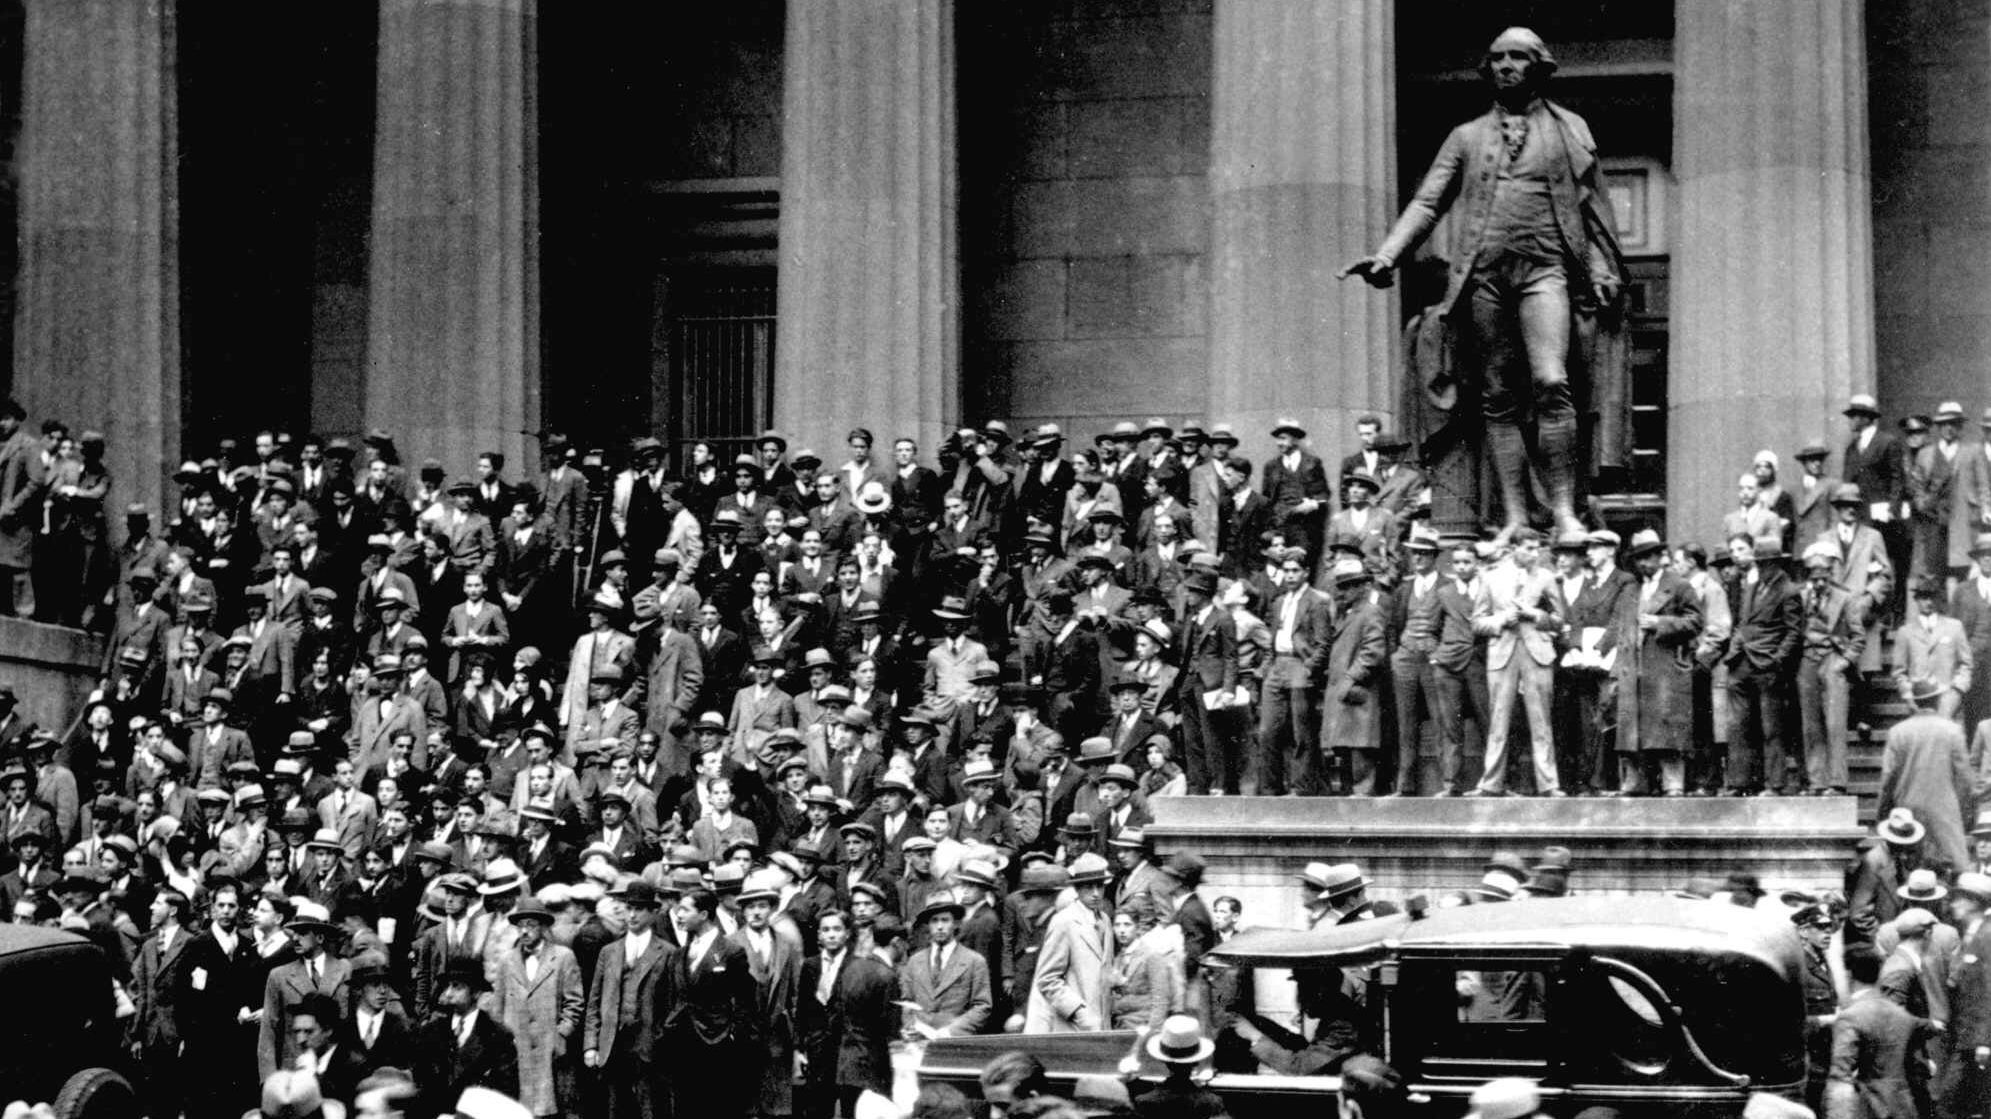 People gather across the street from the New York Stock Exchange in New York on Oct. 24, 1929. On Oct. 28, the Dow dropped 13% on what would be called Black Monday. It fell another 13% the next day, Black Tuesday.